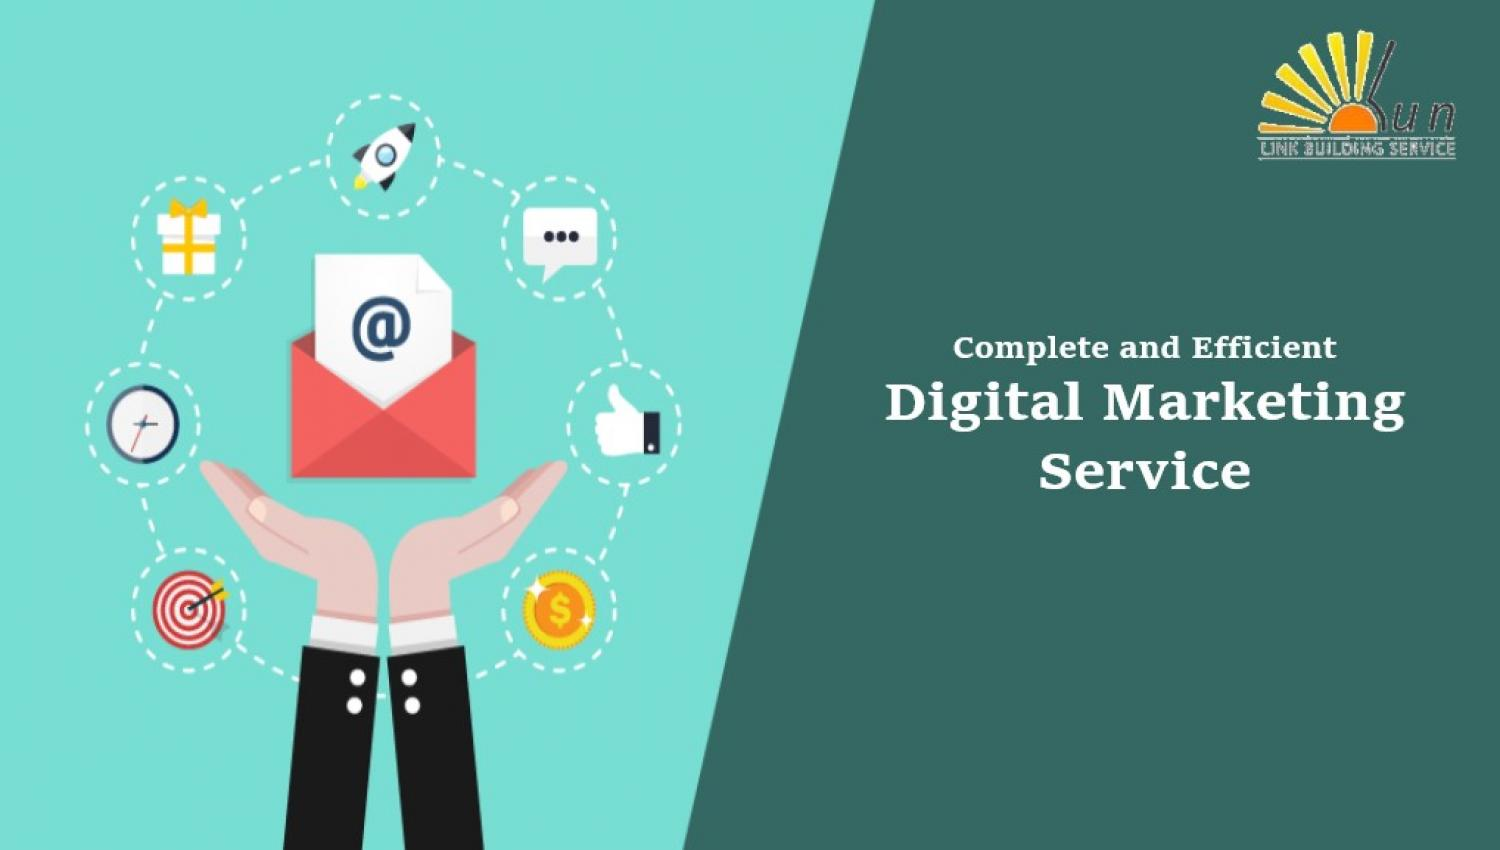 Avail the Complete and Efficient Digital Marketing Services